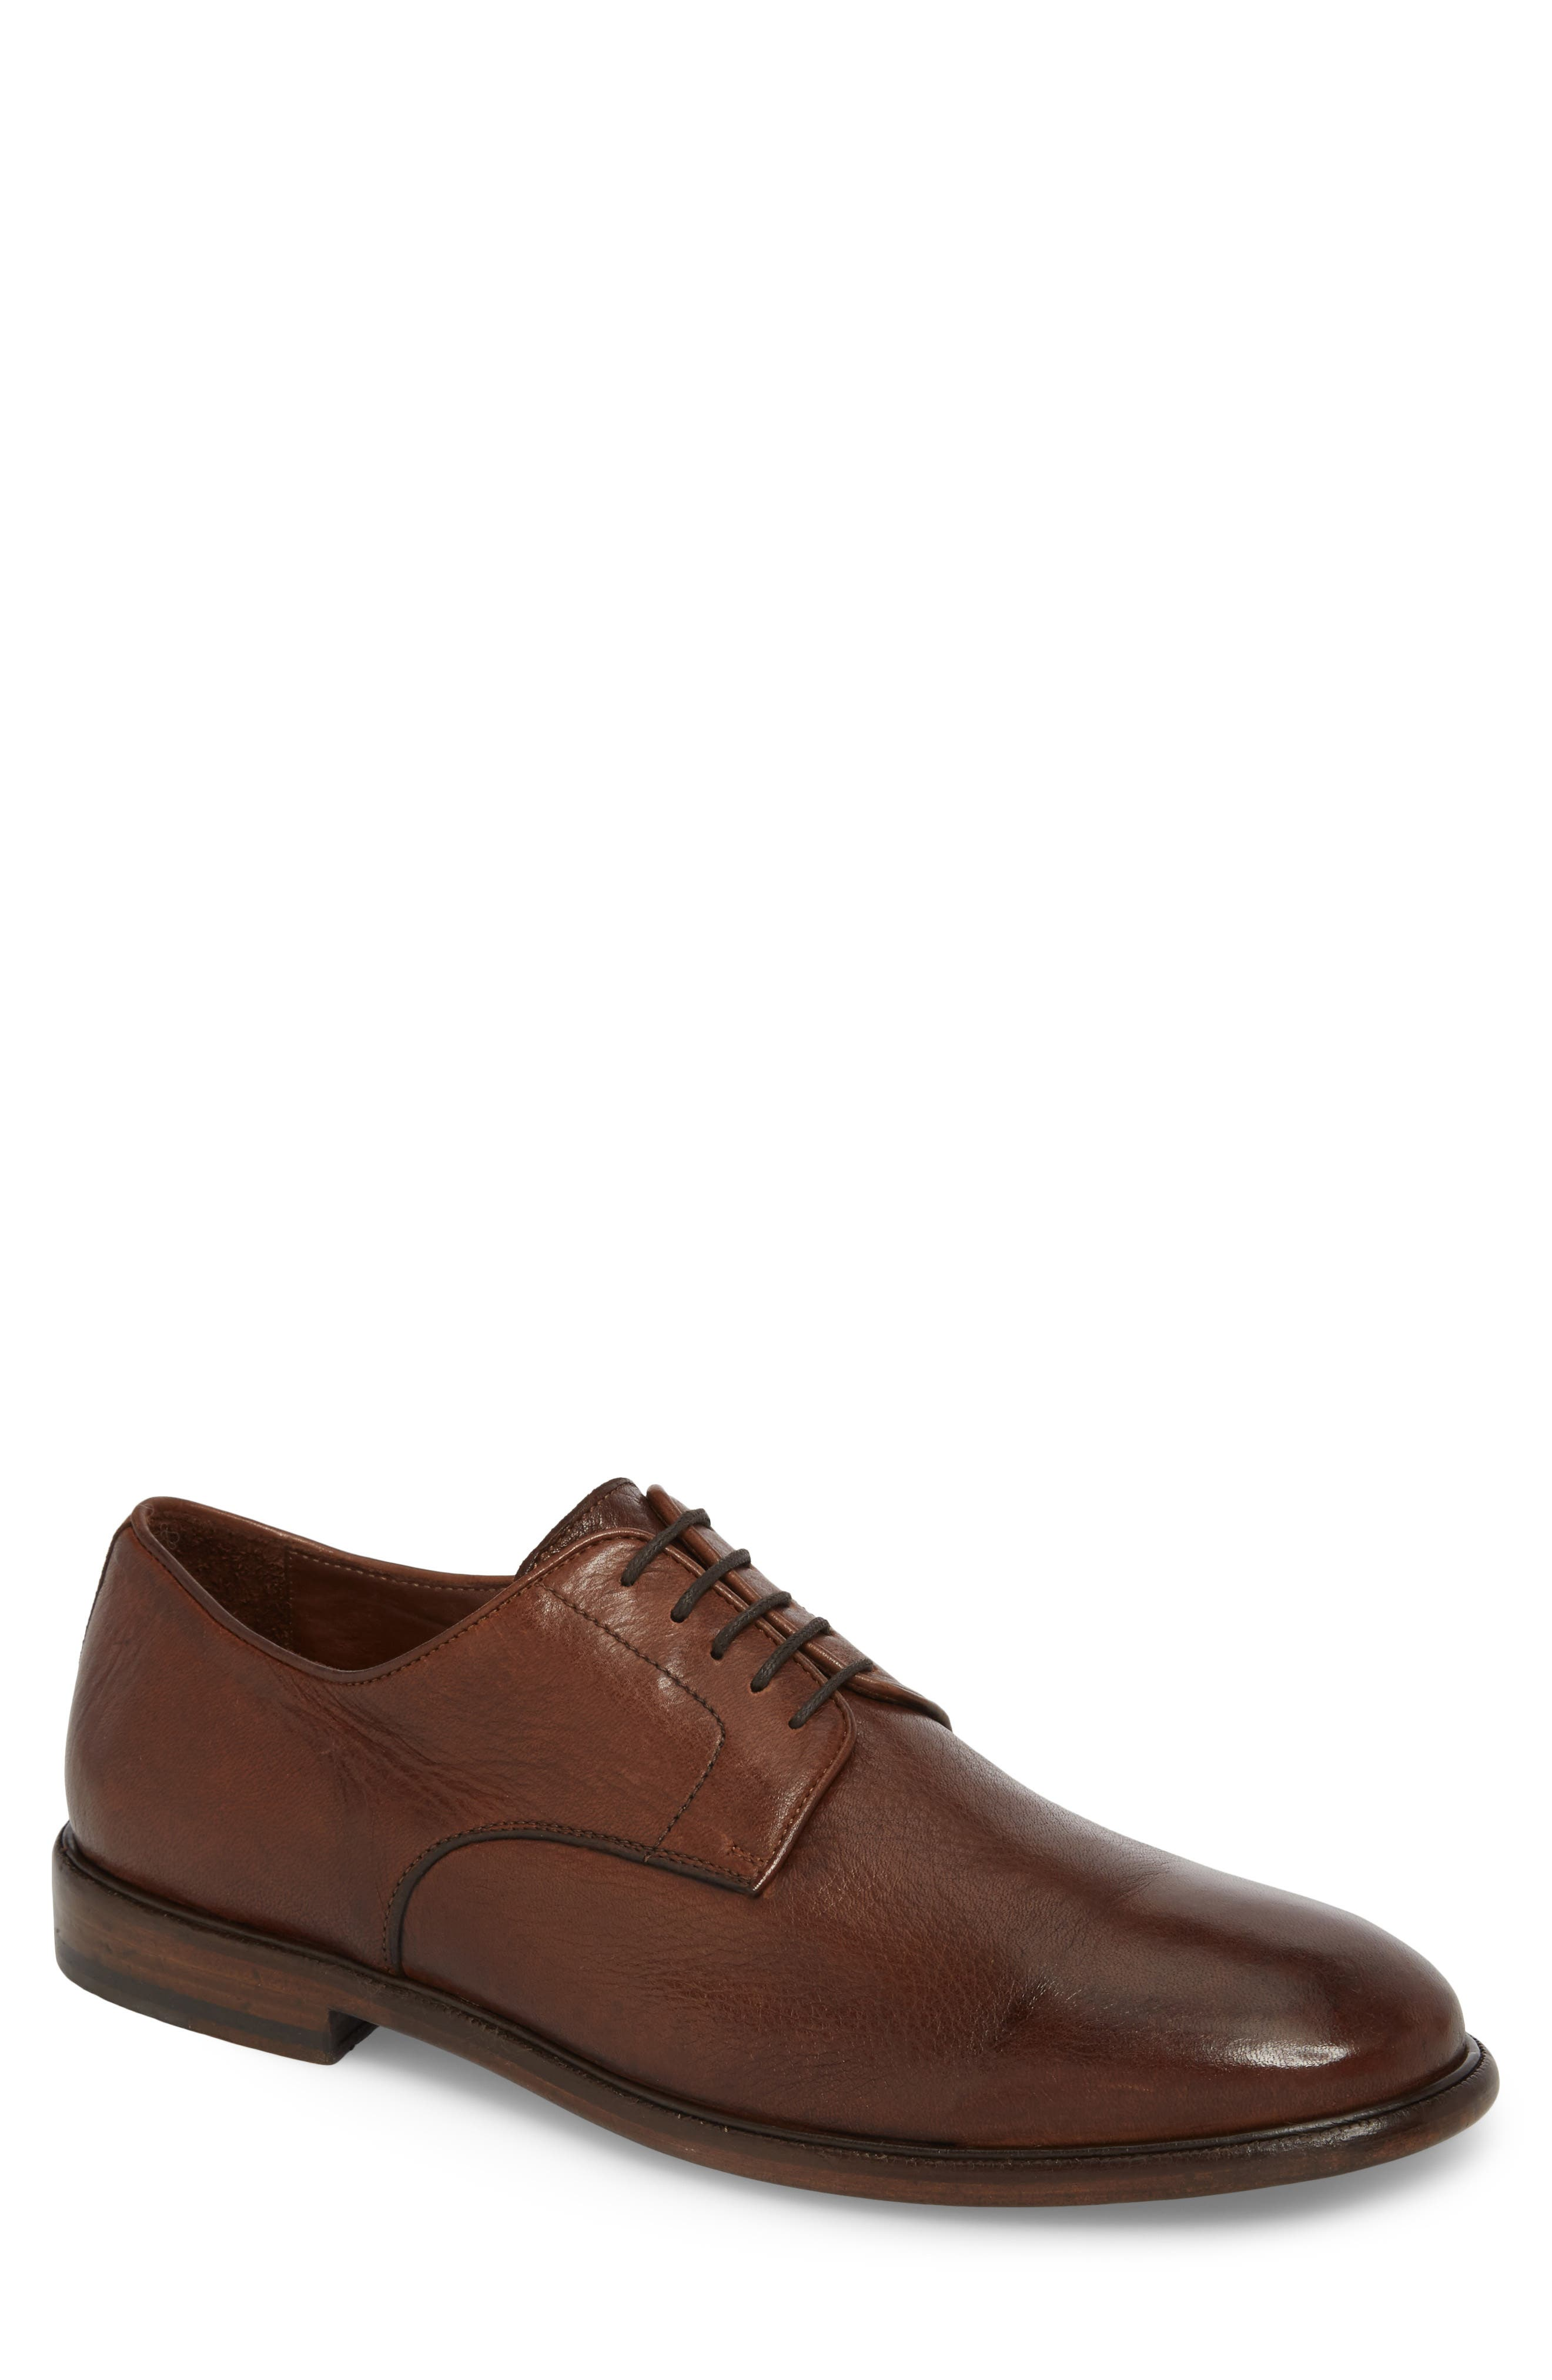 Fisher Derby,                         Main,                         color, Cognac Leather